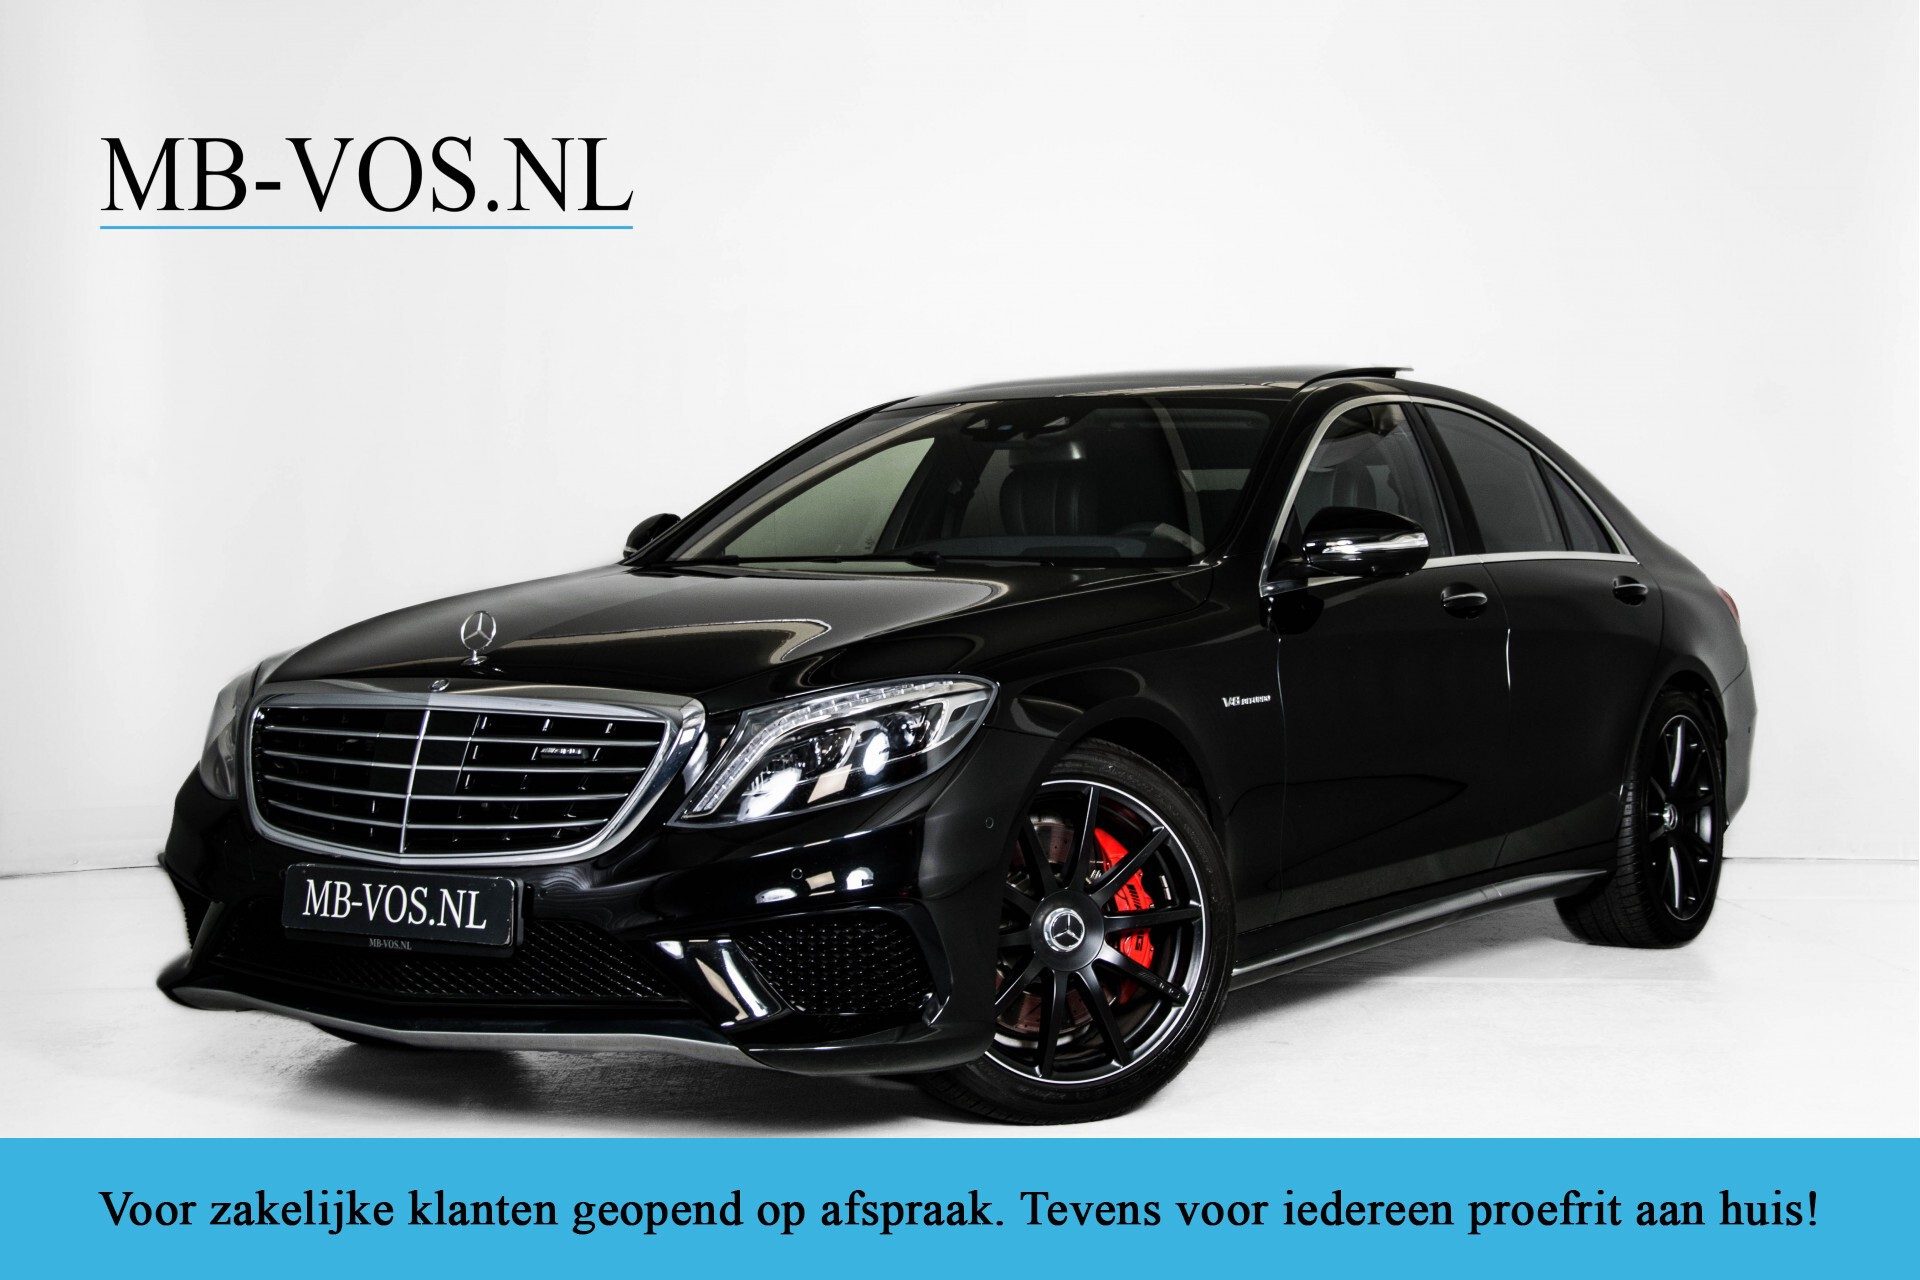 Mercedes-Benz S-Klasse 63 AMG Exclusive/Burmester High-End/Driverspack Aut7 Foto 1